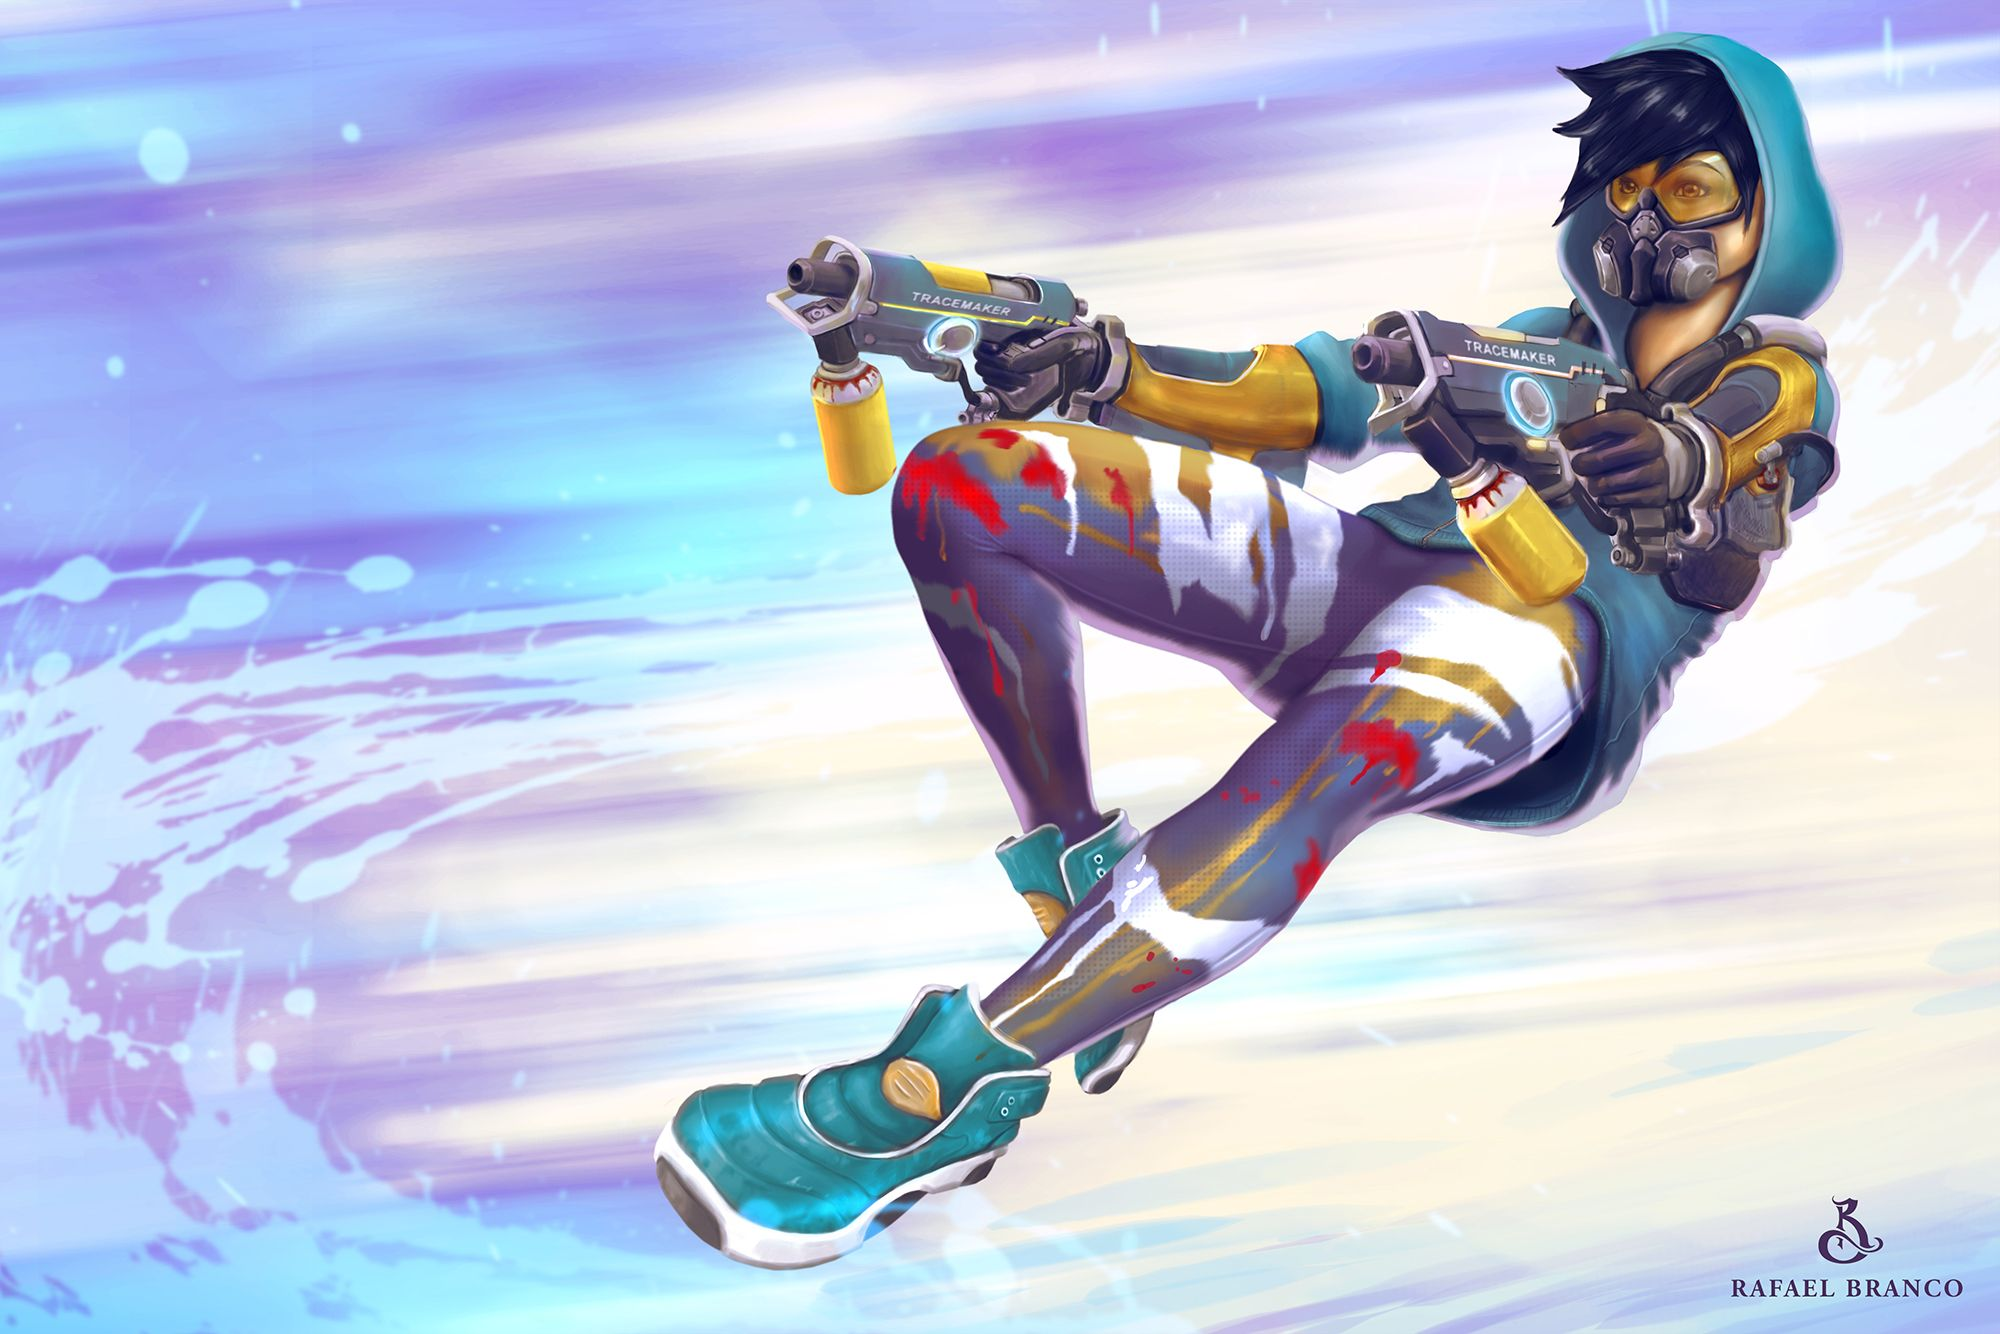 Overwatch Tracer Wallpapers Photo On Wallpaper 1080p Hd Overwatch Tracer Overwatch Overwatch Hero Concepts